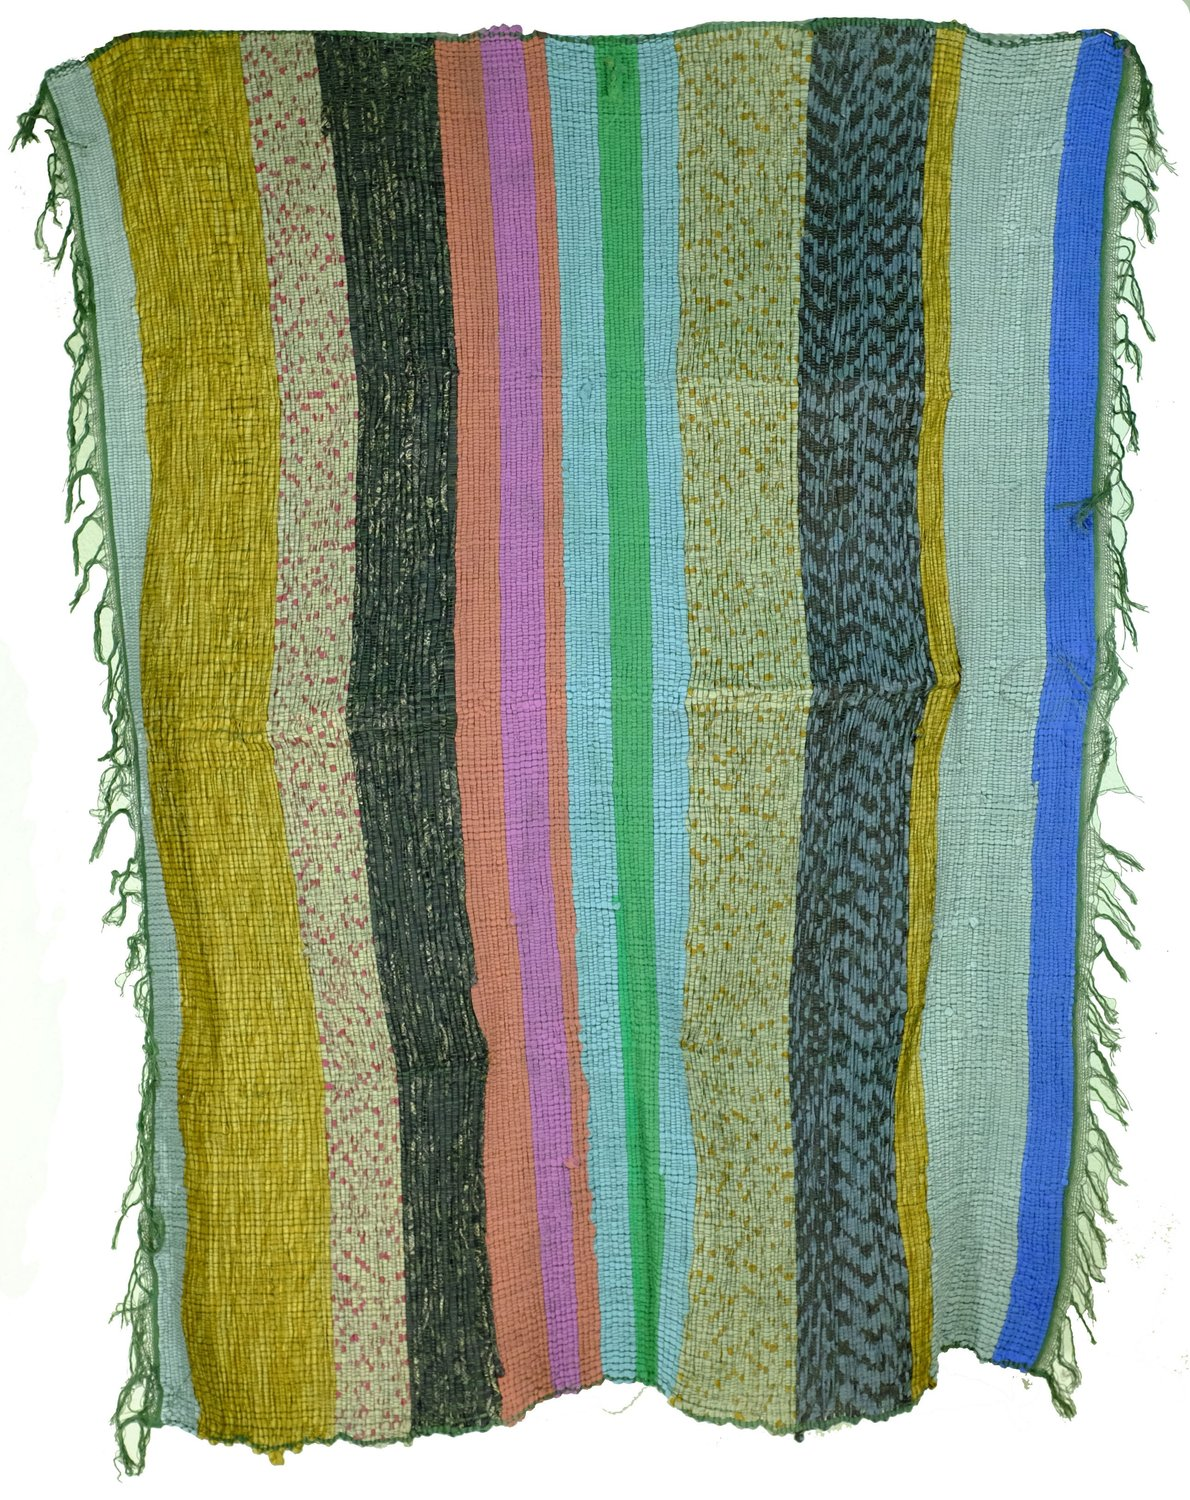 Rajasthani Upcycled Dhurrie Rugs from India